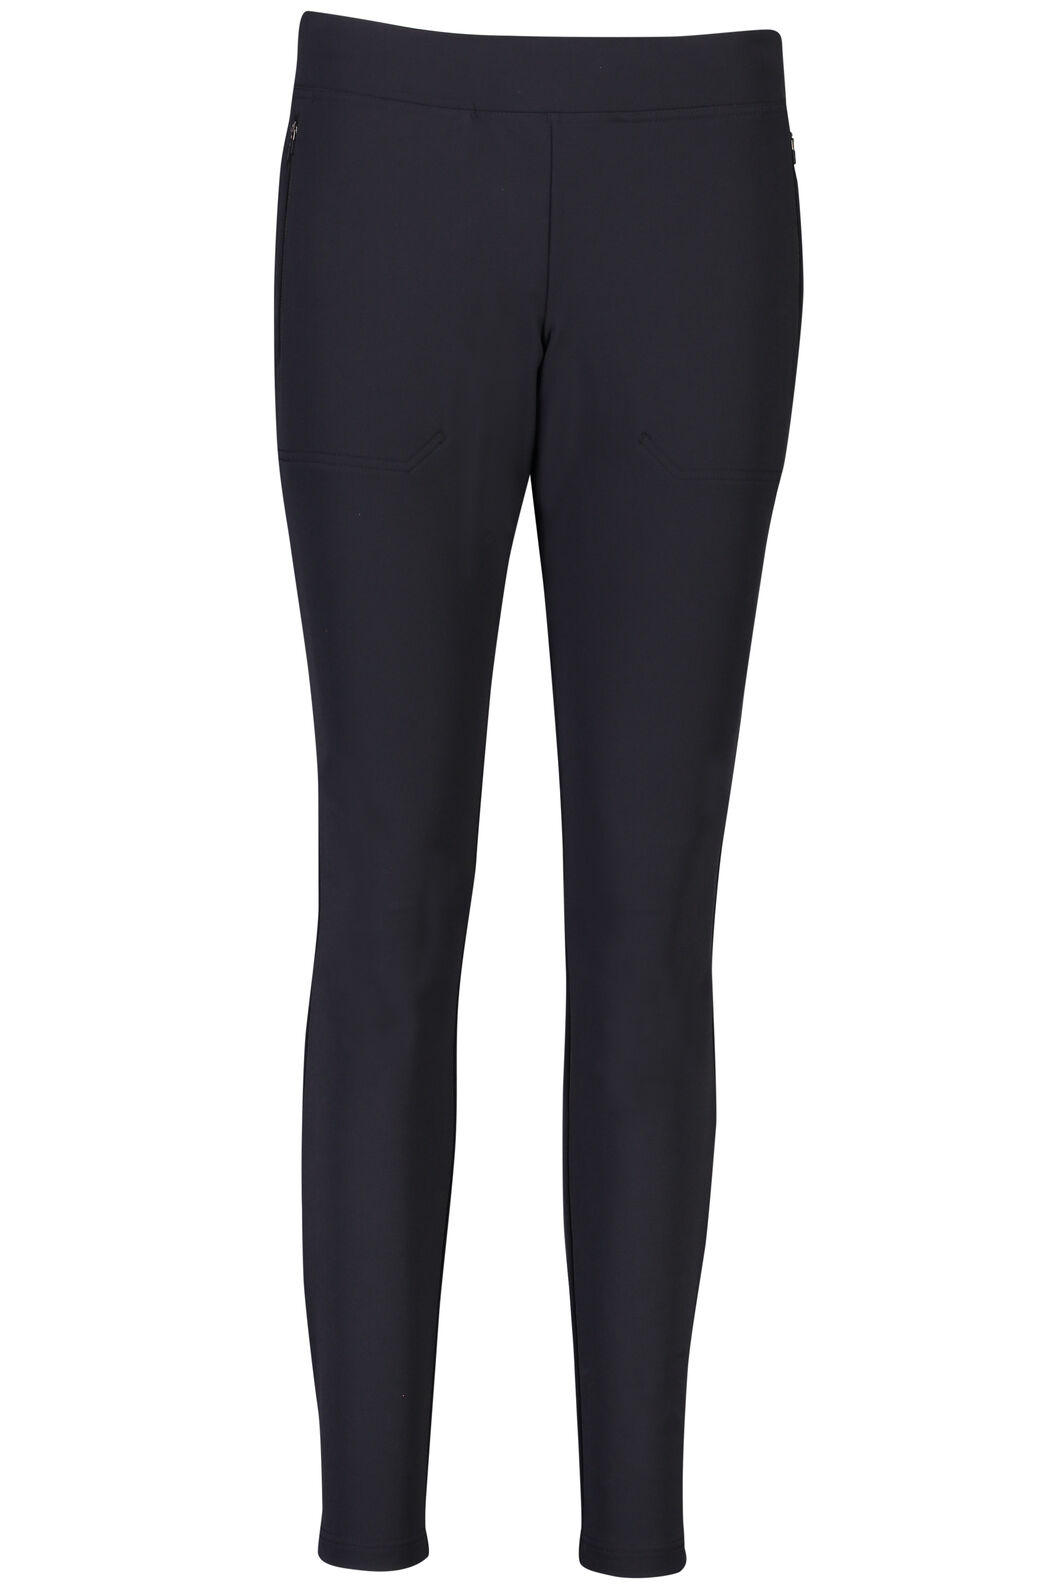 Macpac Winter Hike Tights - Women's, Black, hi-res